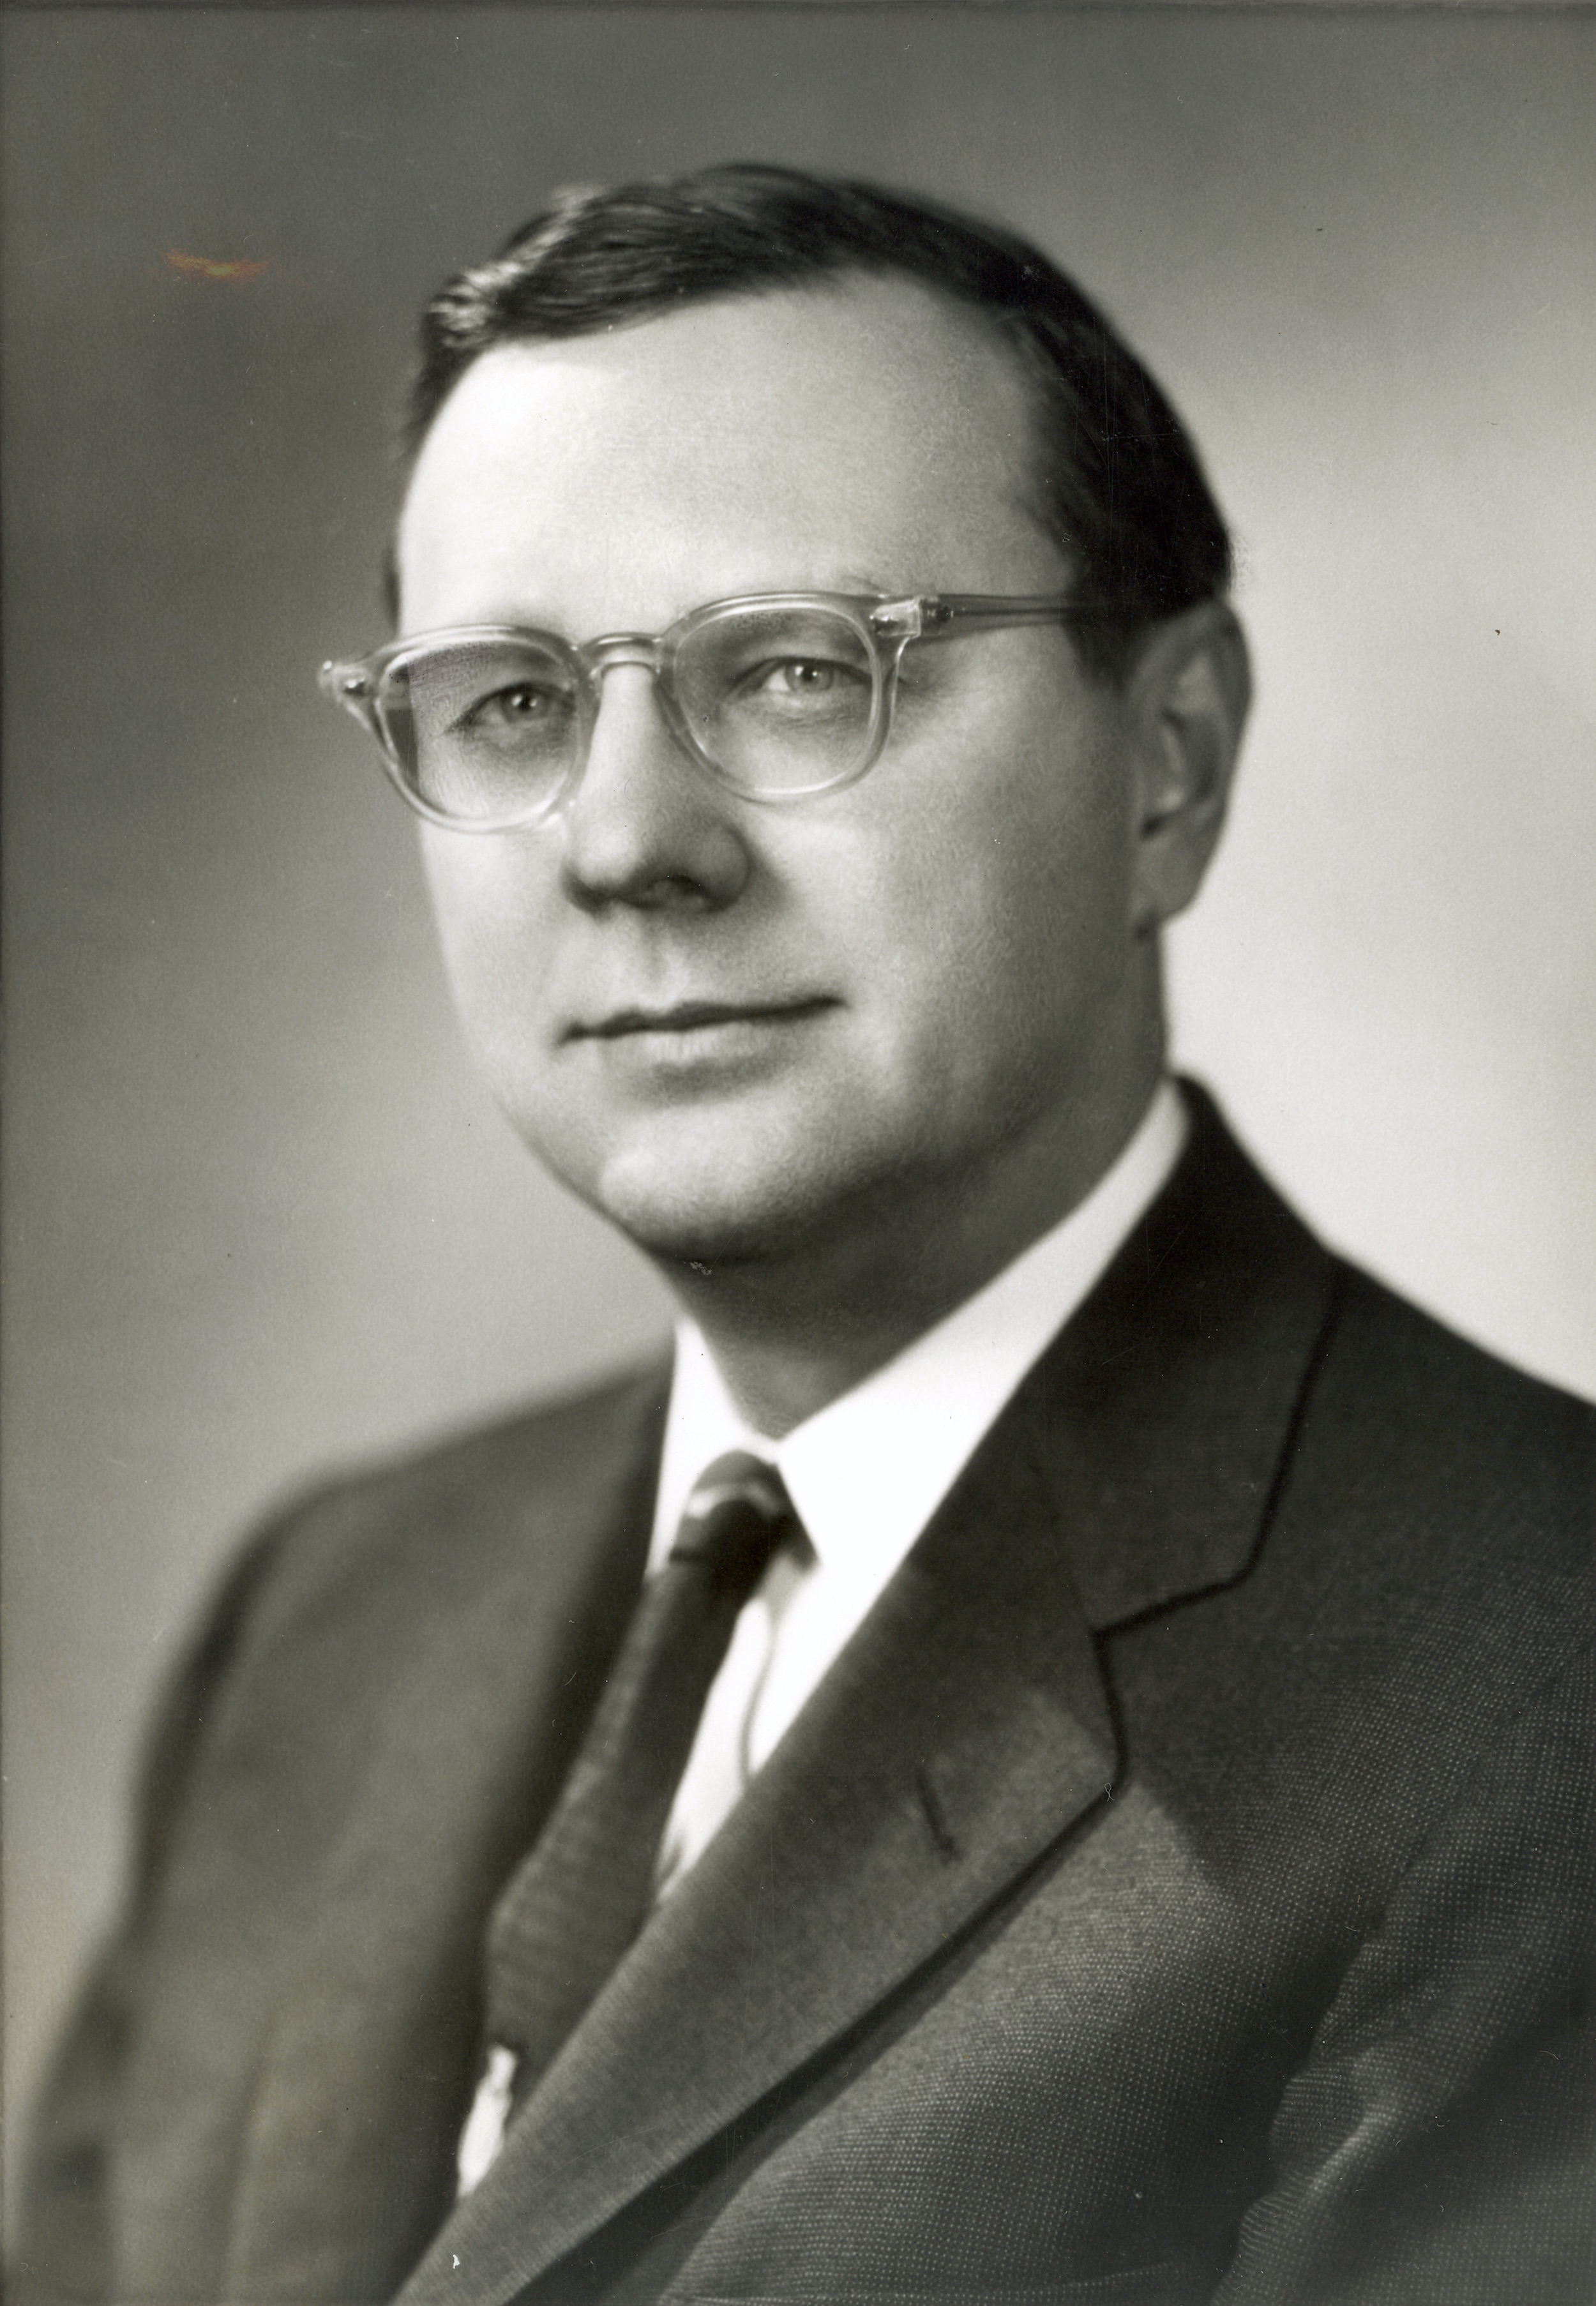 <table class=&quot;lightbox&quot;><tr><td colspan=2 class=&quot;lightbox-title&quot;>Frank Zeidler</td></tr><tr><td colspan=2 class=&quot;lightbox-caption&quot;>Portrait of Milwaukee's 35th mayor Frank Zeidler. He served three terms from 1948-1960.</td></tr><tr><td colspan=2 class=&quot;lightbox-spacer&quot;></td></tr><tr class=&quot;lightbox-detail&quot;><td class=&quot;cell-title&quot;>Source: </td><td class=&quot;cell-value&quot;>From the Milwaukee Mayors Collection of the Milwaukee Public Library. Reprinted with permission.<br /><a href=&quot;http://content.mpl.org/cdm/singleitem/collection/MilwMayors/id/35/rec/11&quot; target=&quot;_blank&quot;>Milwaukee Public Library</a></td></tr><tr class=&quot;filler-row&quot;><td colspan=2>&nbsp;</td></tr></table>